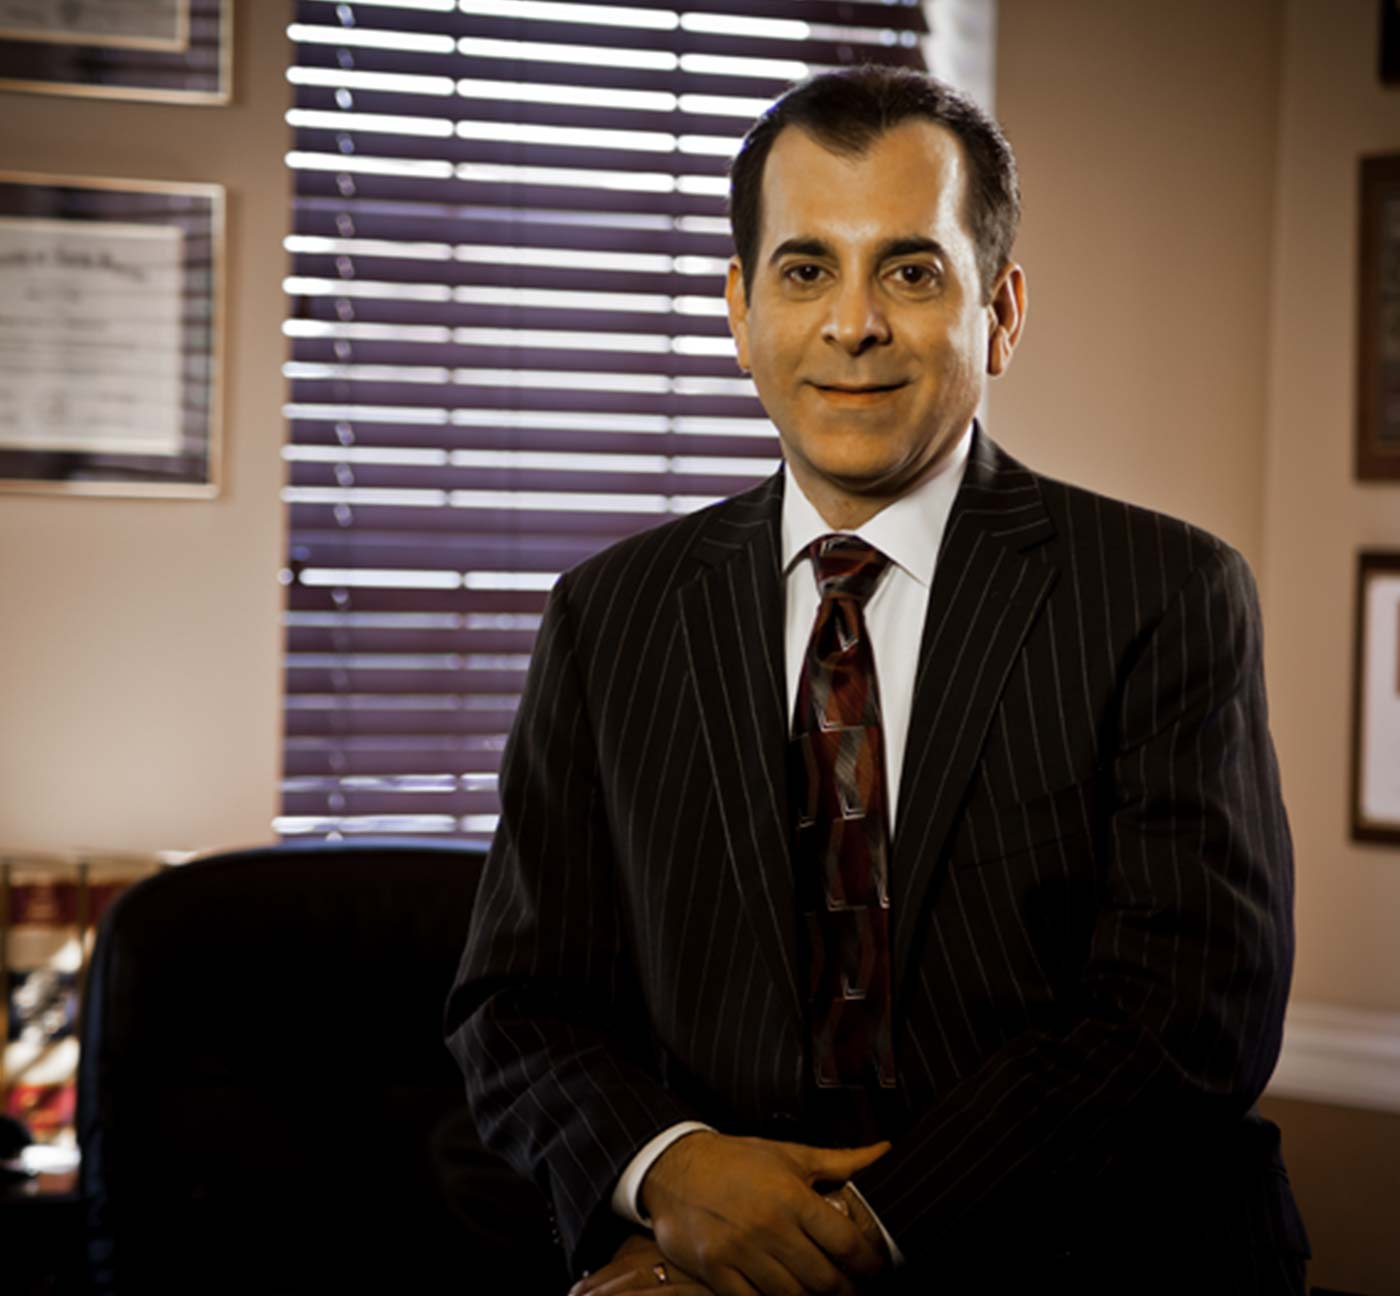 Michael Ossi - Jacksonville Lawyer - Jacksonville Personal Injury Attorney